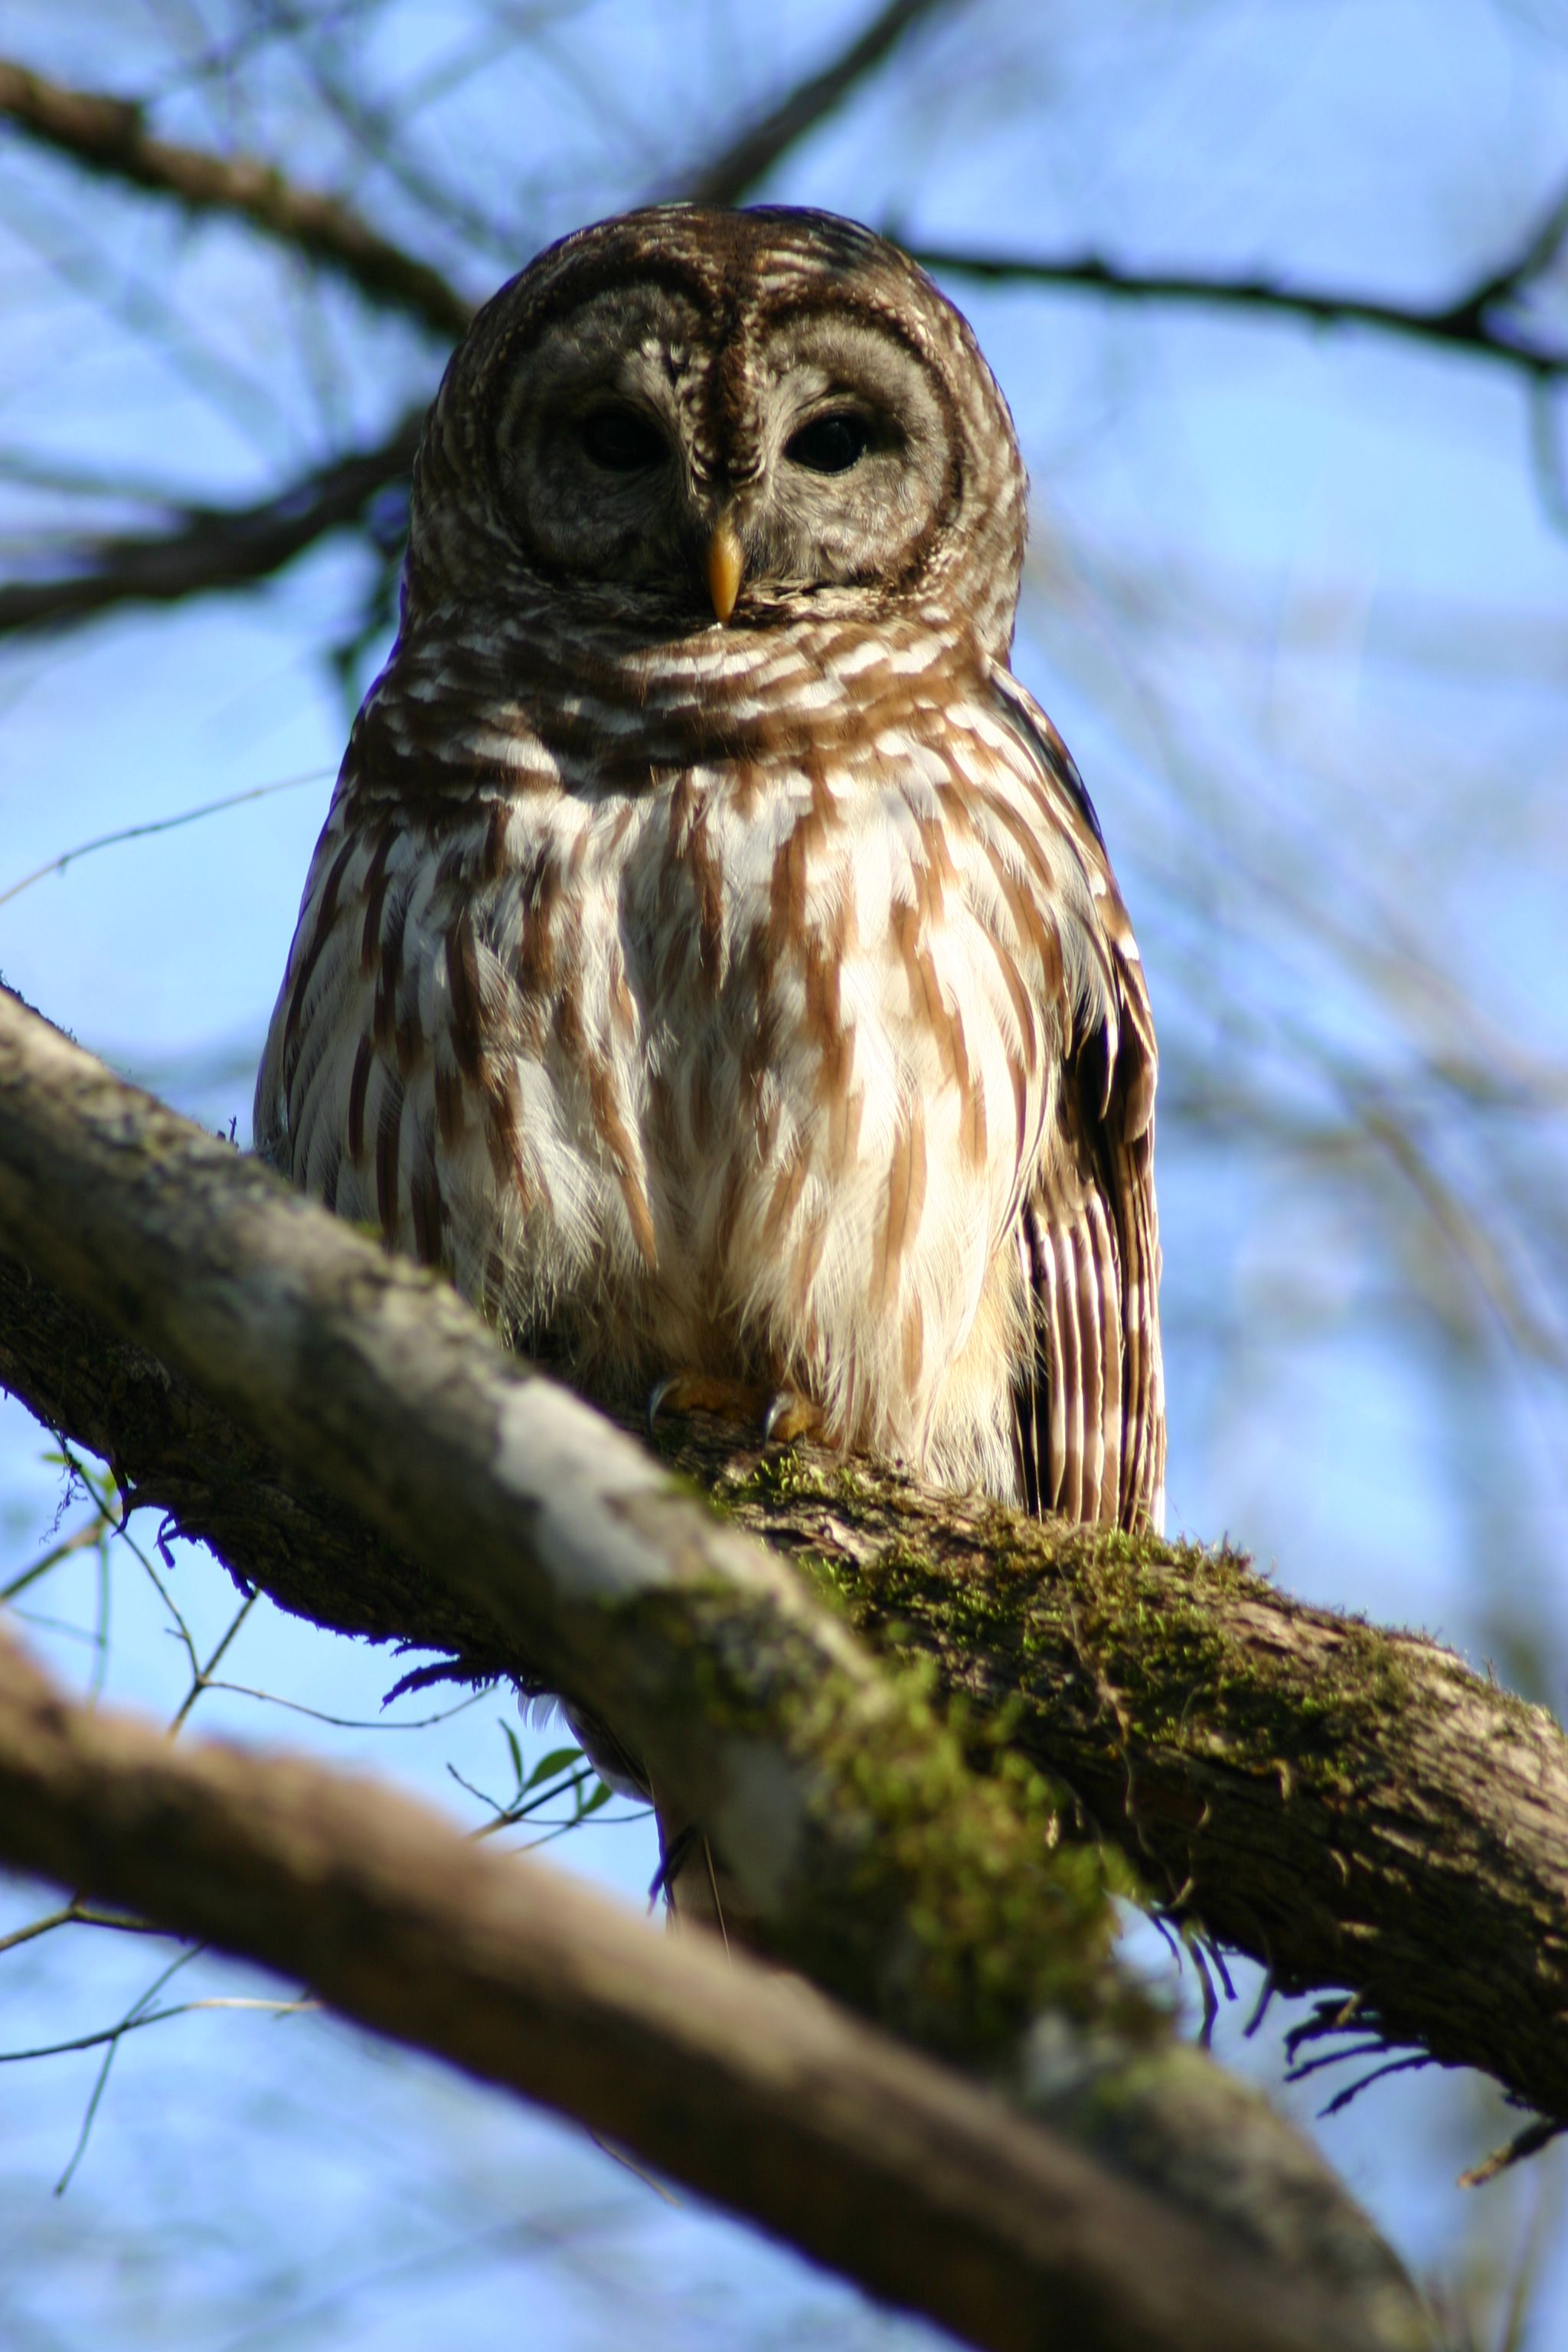 A Barred owl poses perfectly for Mary A. Roth's camera in Florida Caverns State Park.